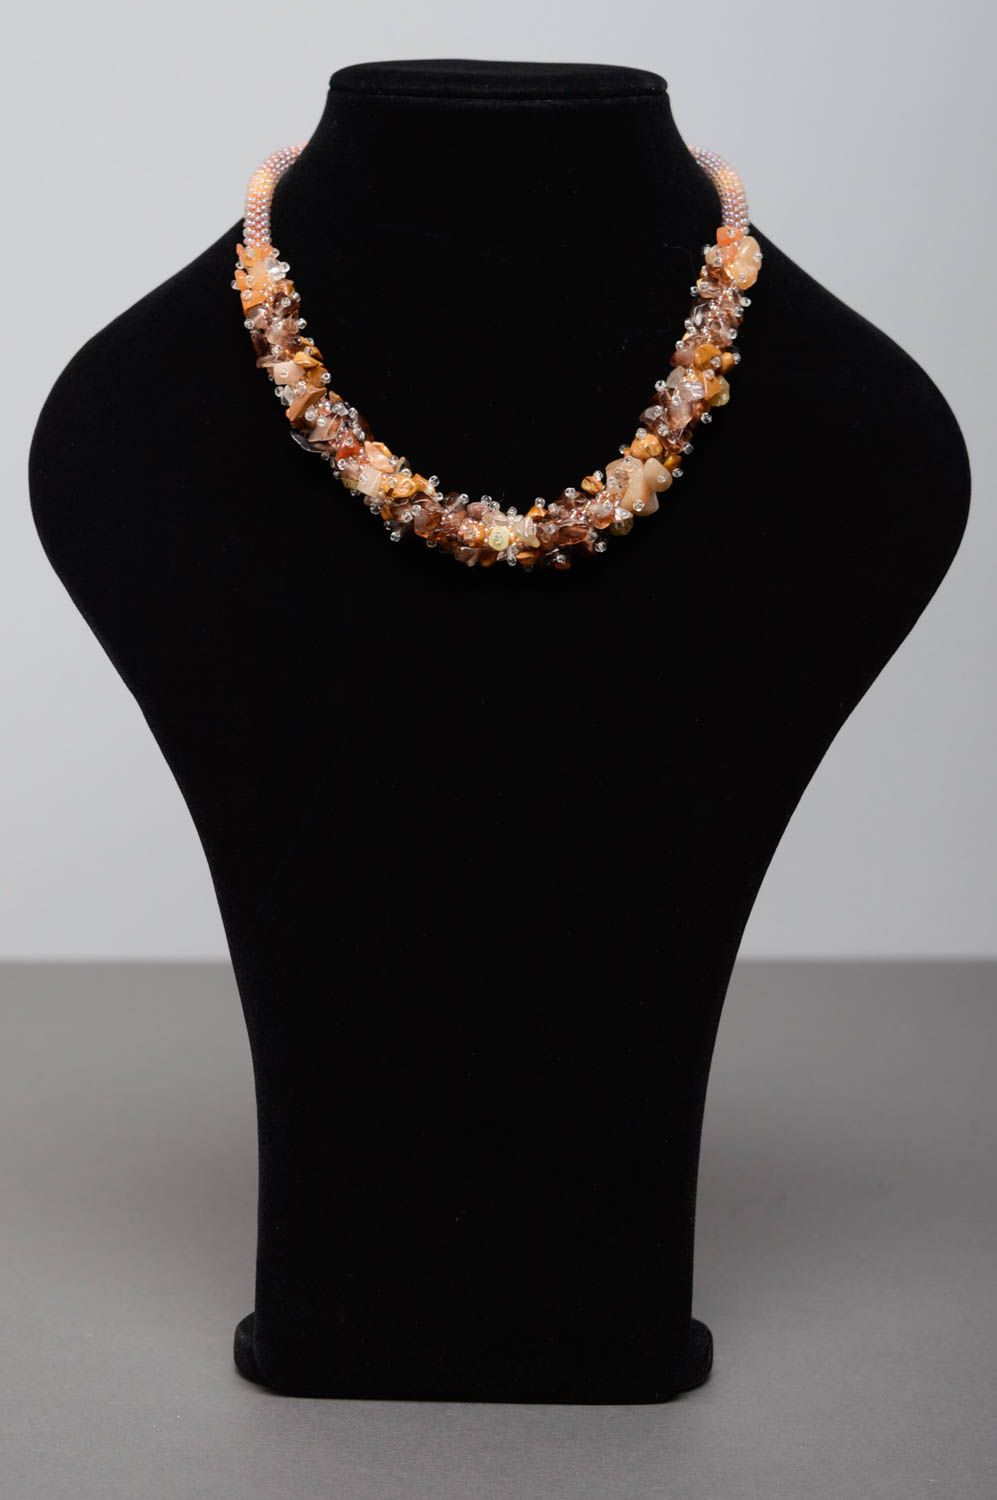 Beaded necklace with natural stones photo 2